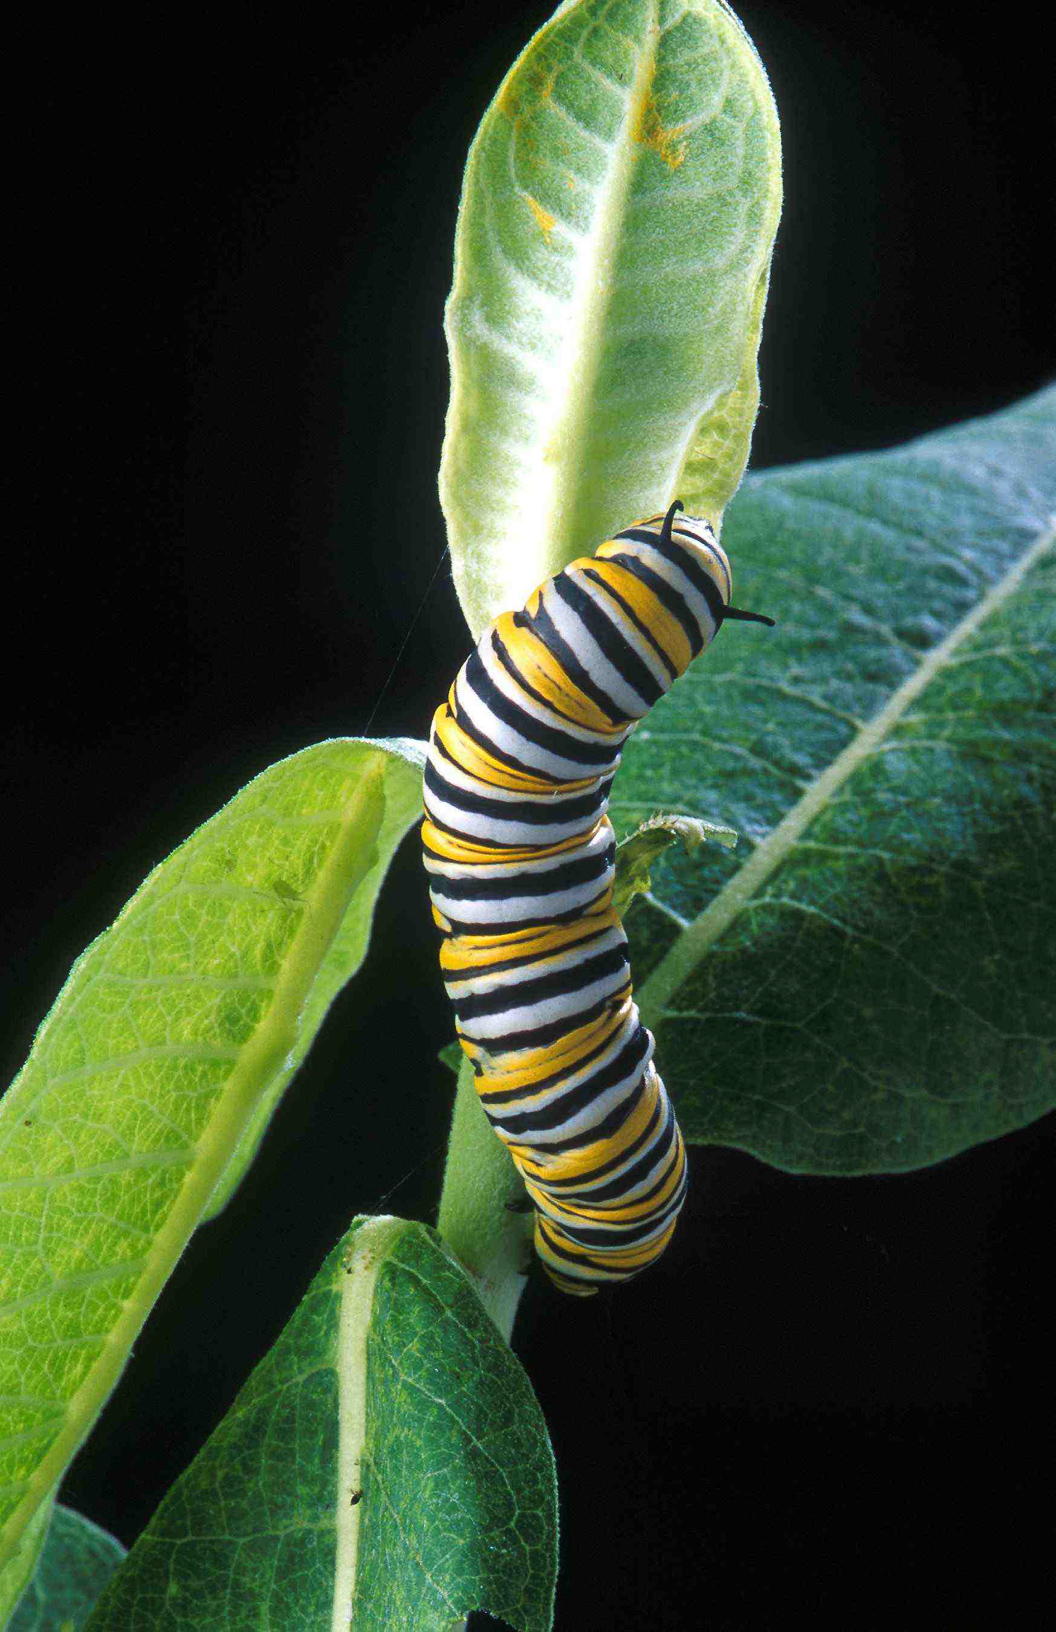 Milkweed is the only food source of the monarch caterpillar and the only plant where the butterfly lays eggs.